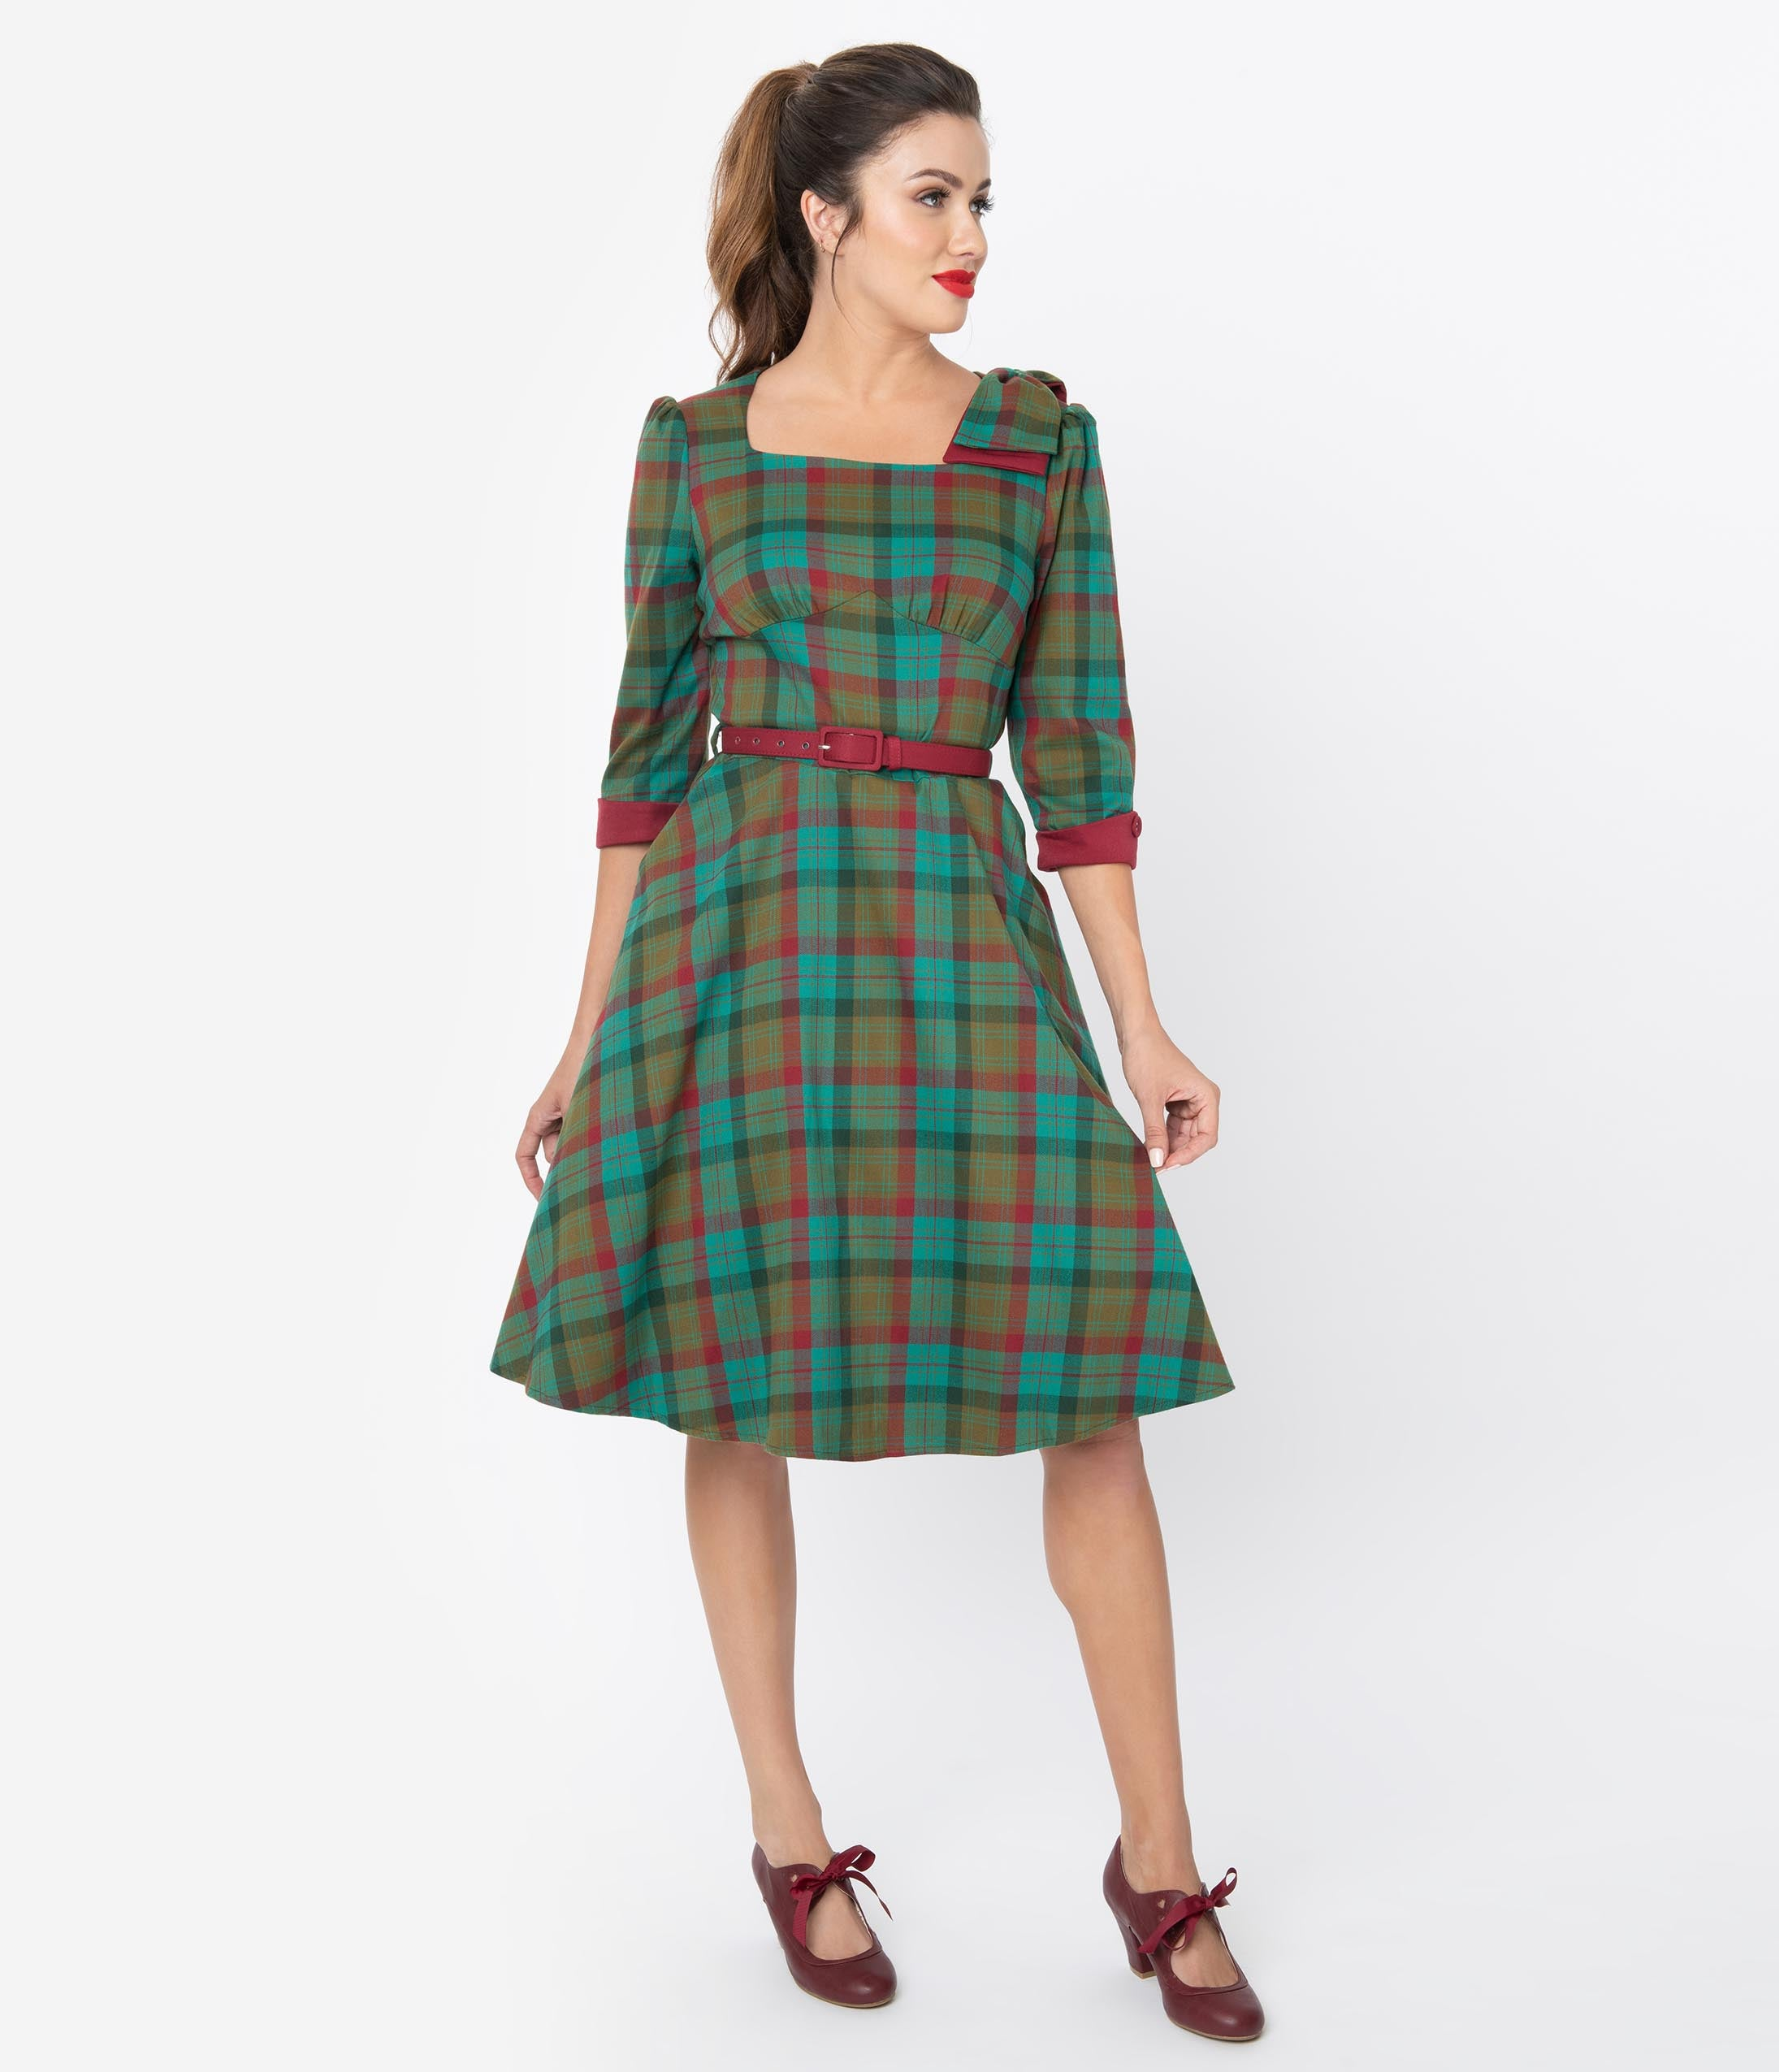 Vintage Christmas Gift Ideas for Women Voodoo Vixen 1950S Green  Burgundy Red Plaid Short Sleeve Swing Dress $88.00 AT vintagedancer.com